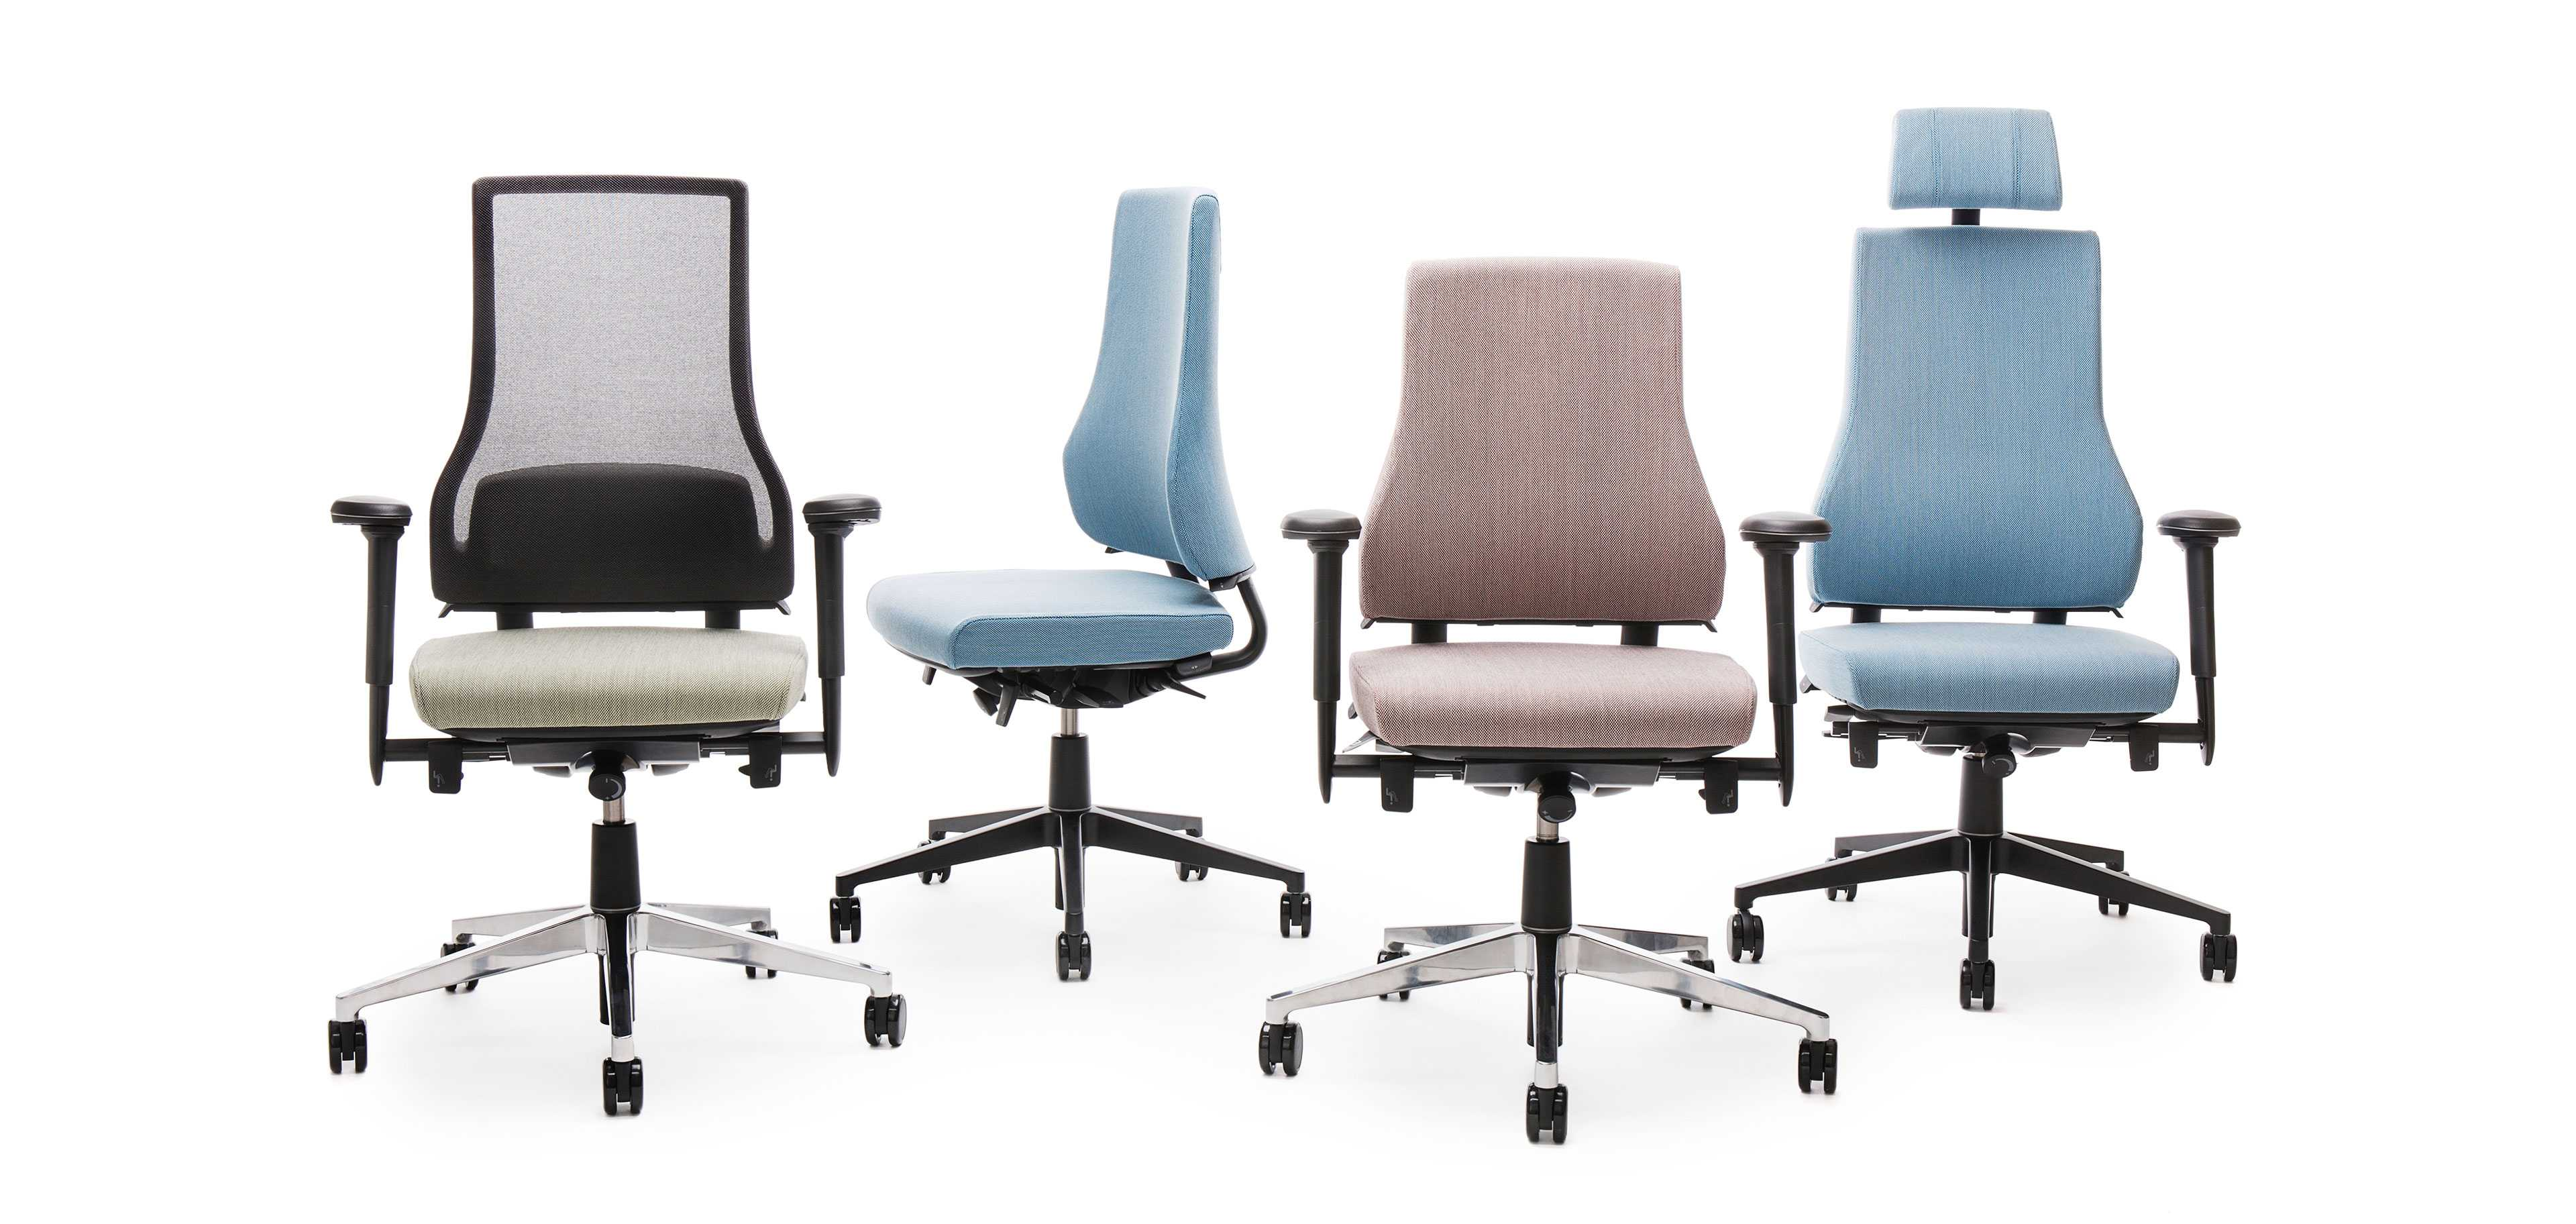 Task chairs by Martela